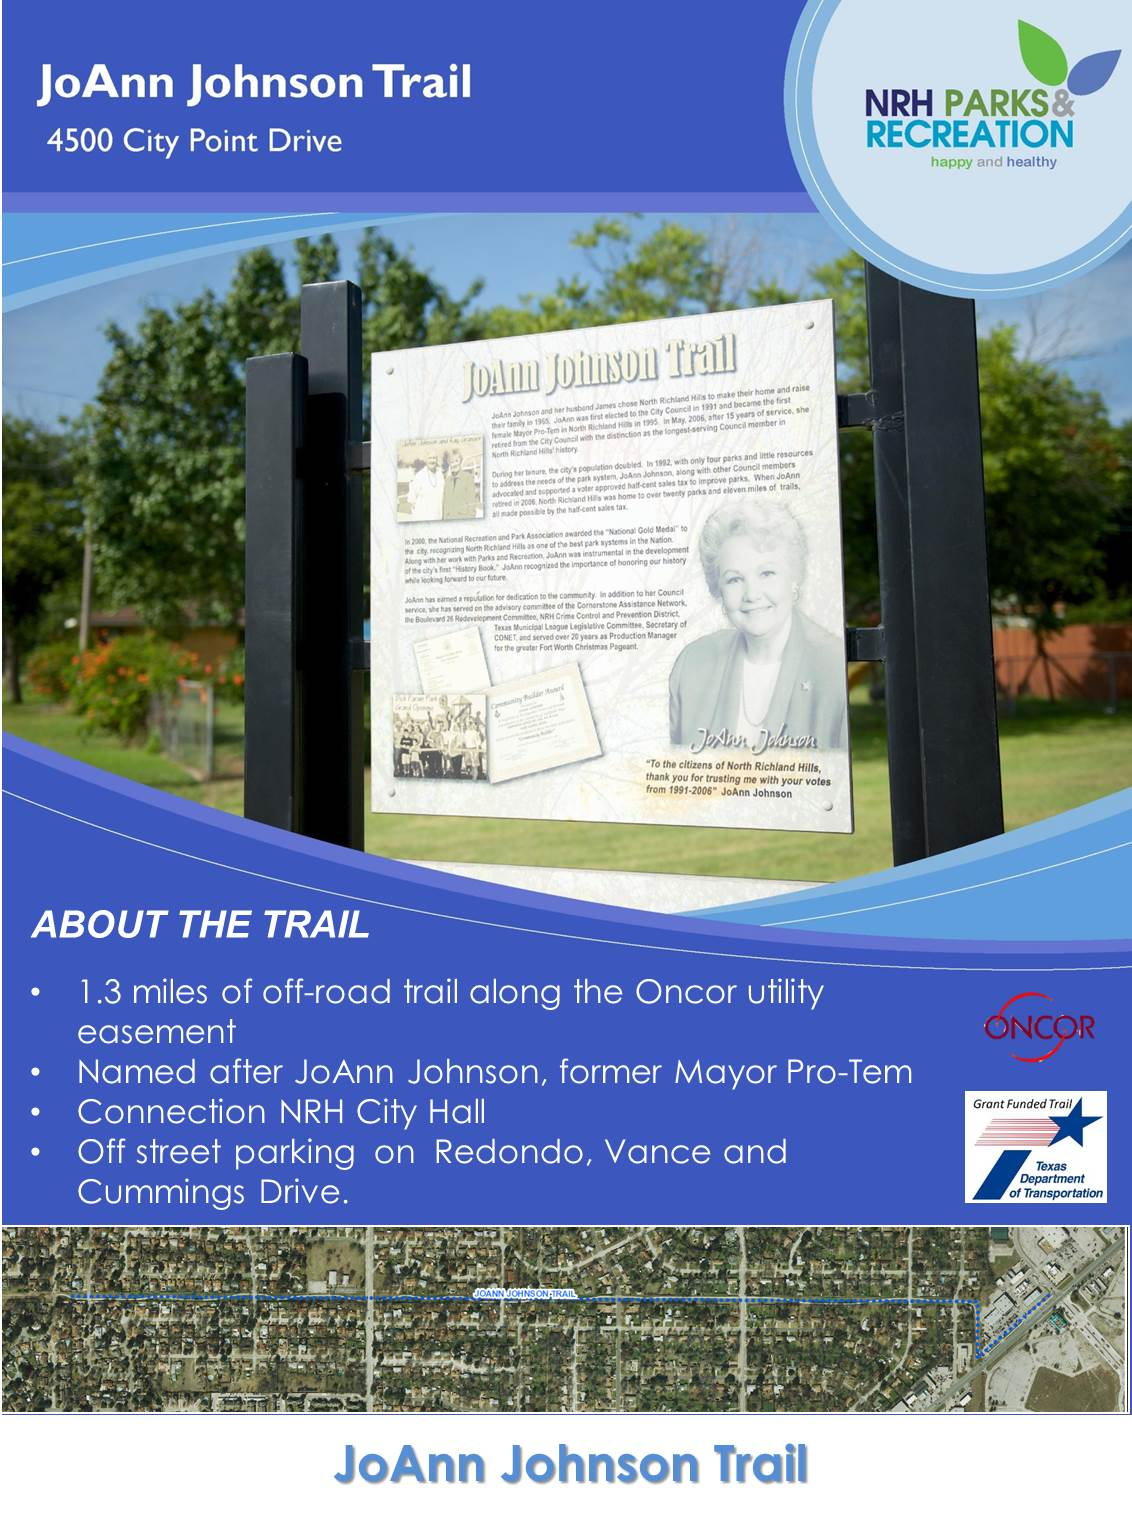 JoAnn Johnson Trail Fact Sheet.jpg